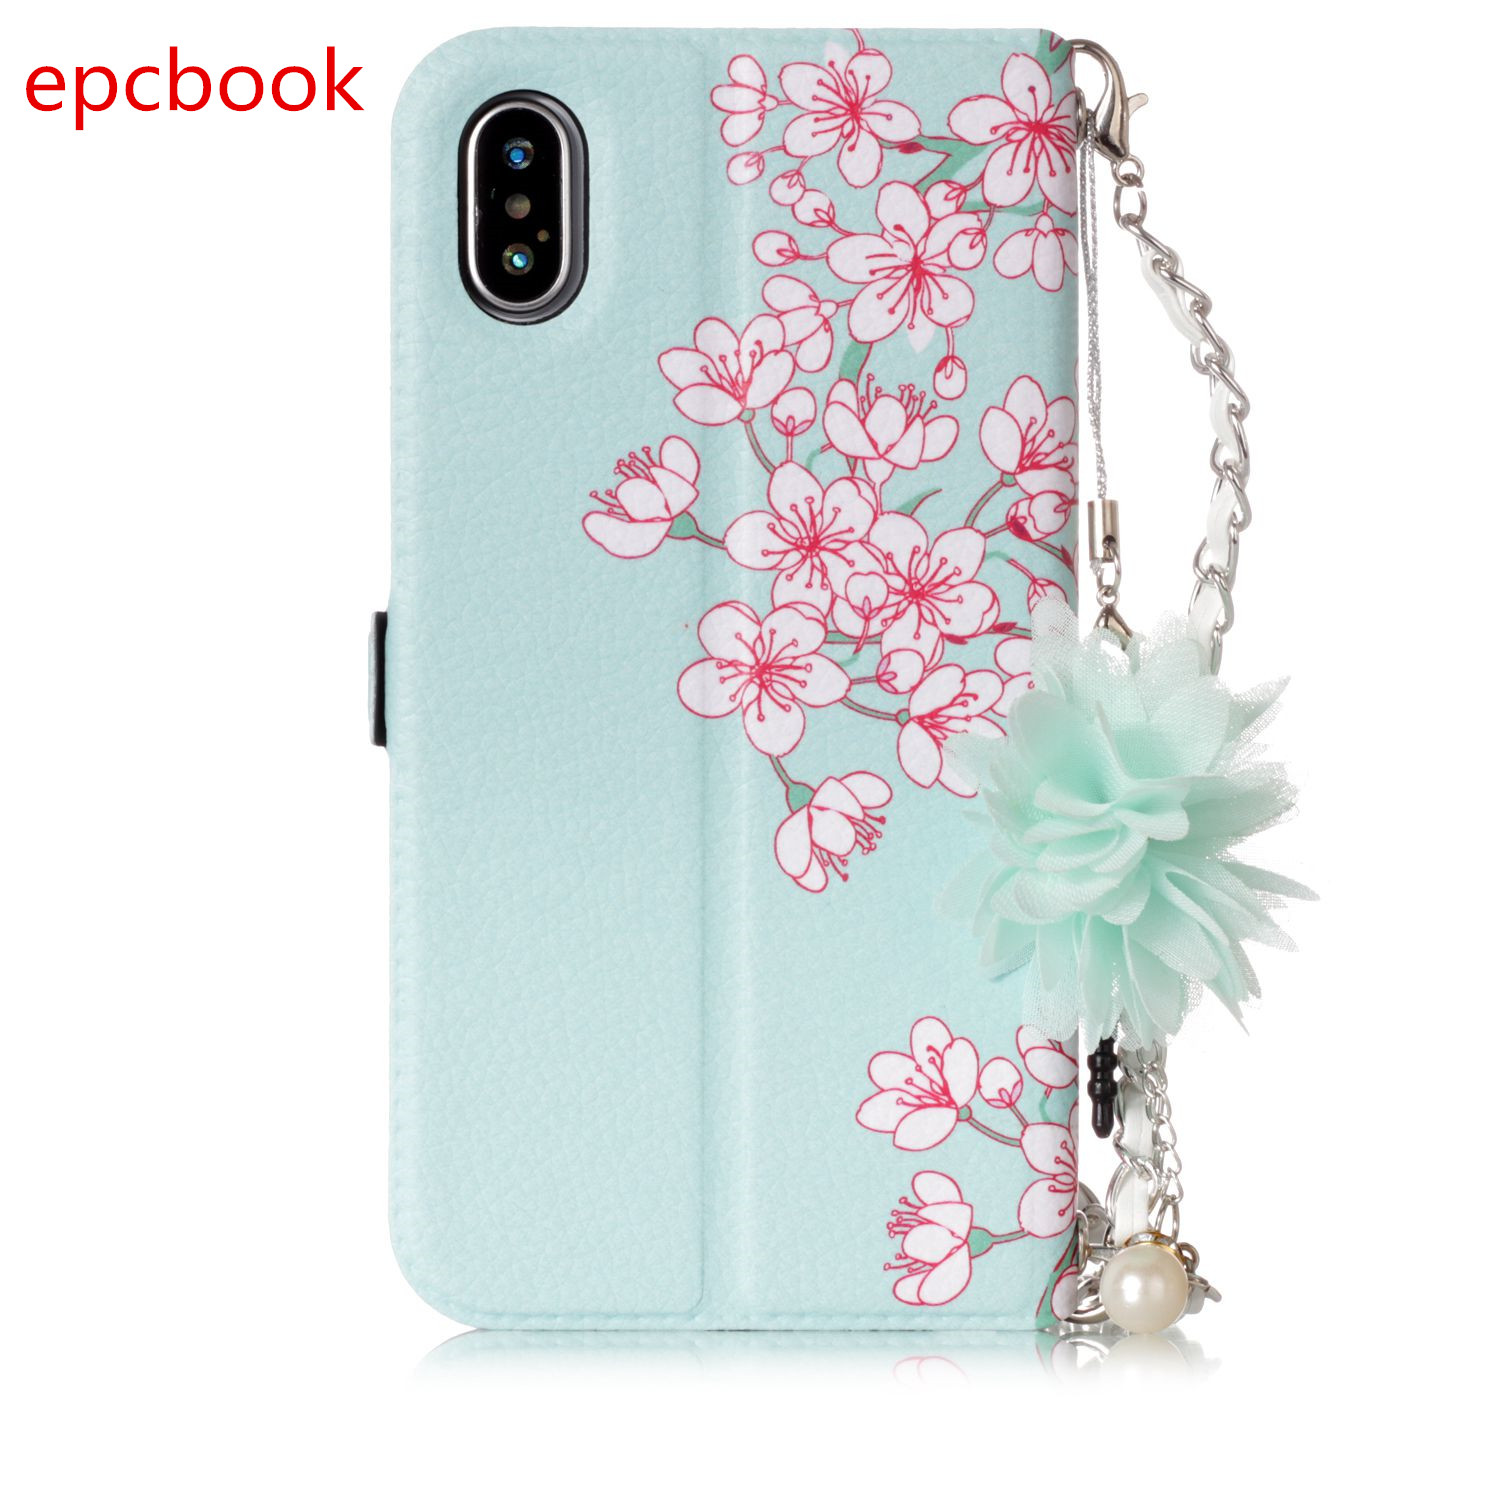 epcbook Luxury Flip Wallet Case For Apple iPhone 8 8plus X Cover Case For iPhoen 7 7plus flower PU Leather With Card Pocket Case